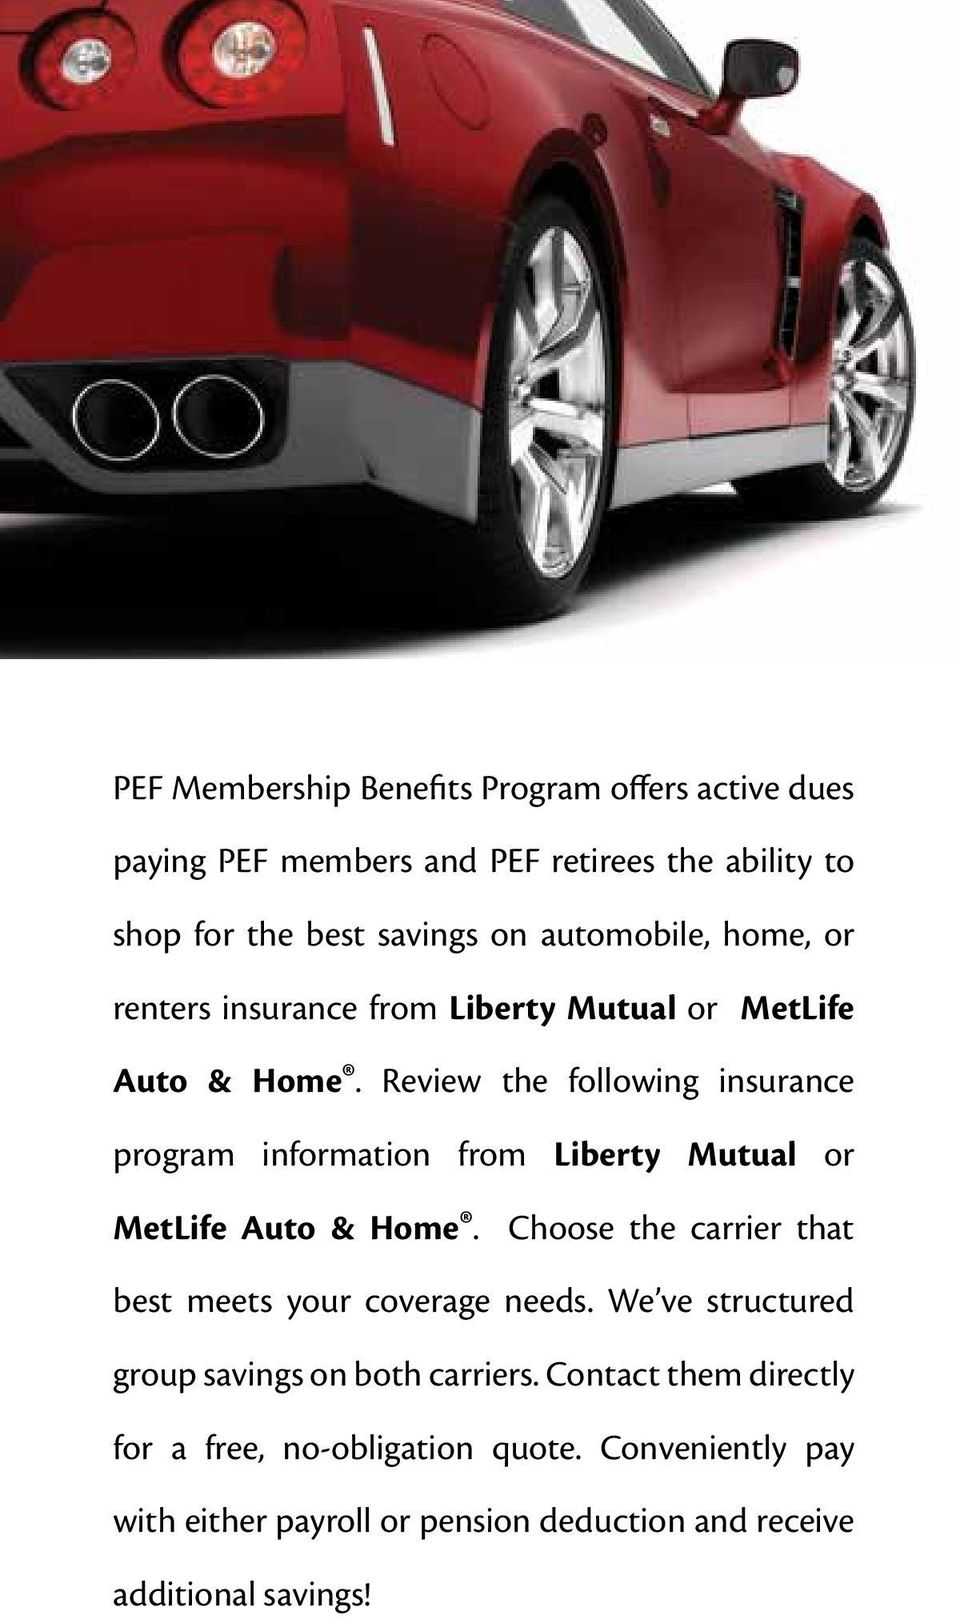 Review the following insurance program information from Liberty Mutual or MetLife Auto & Home.